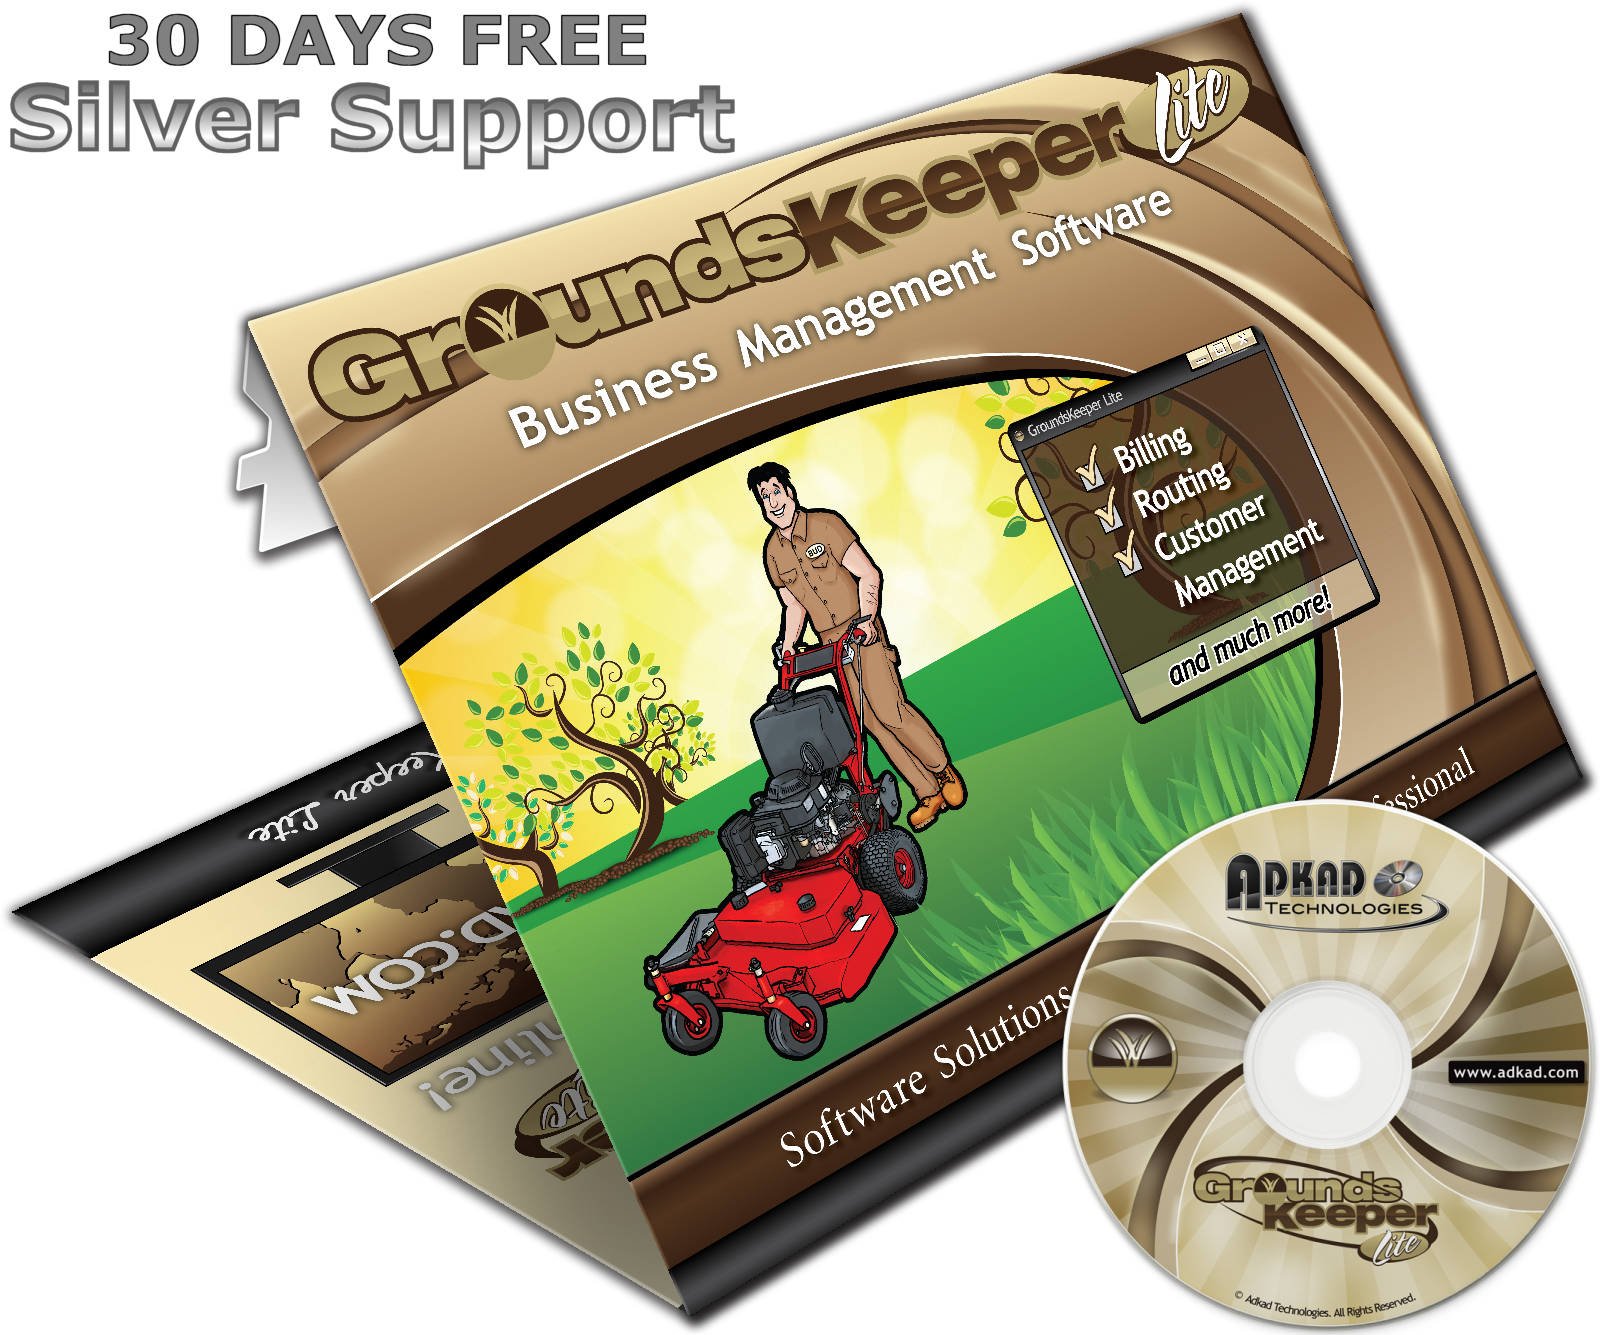 groundskeeper lite v3122 is billing and routing software